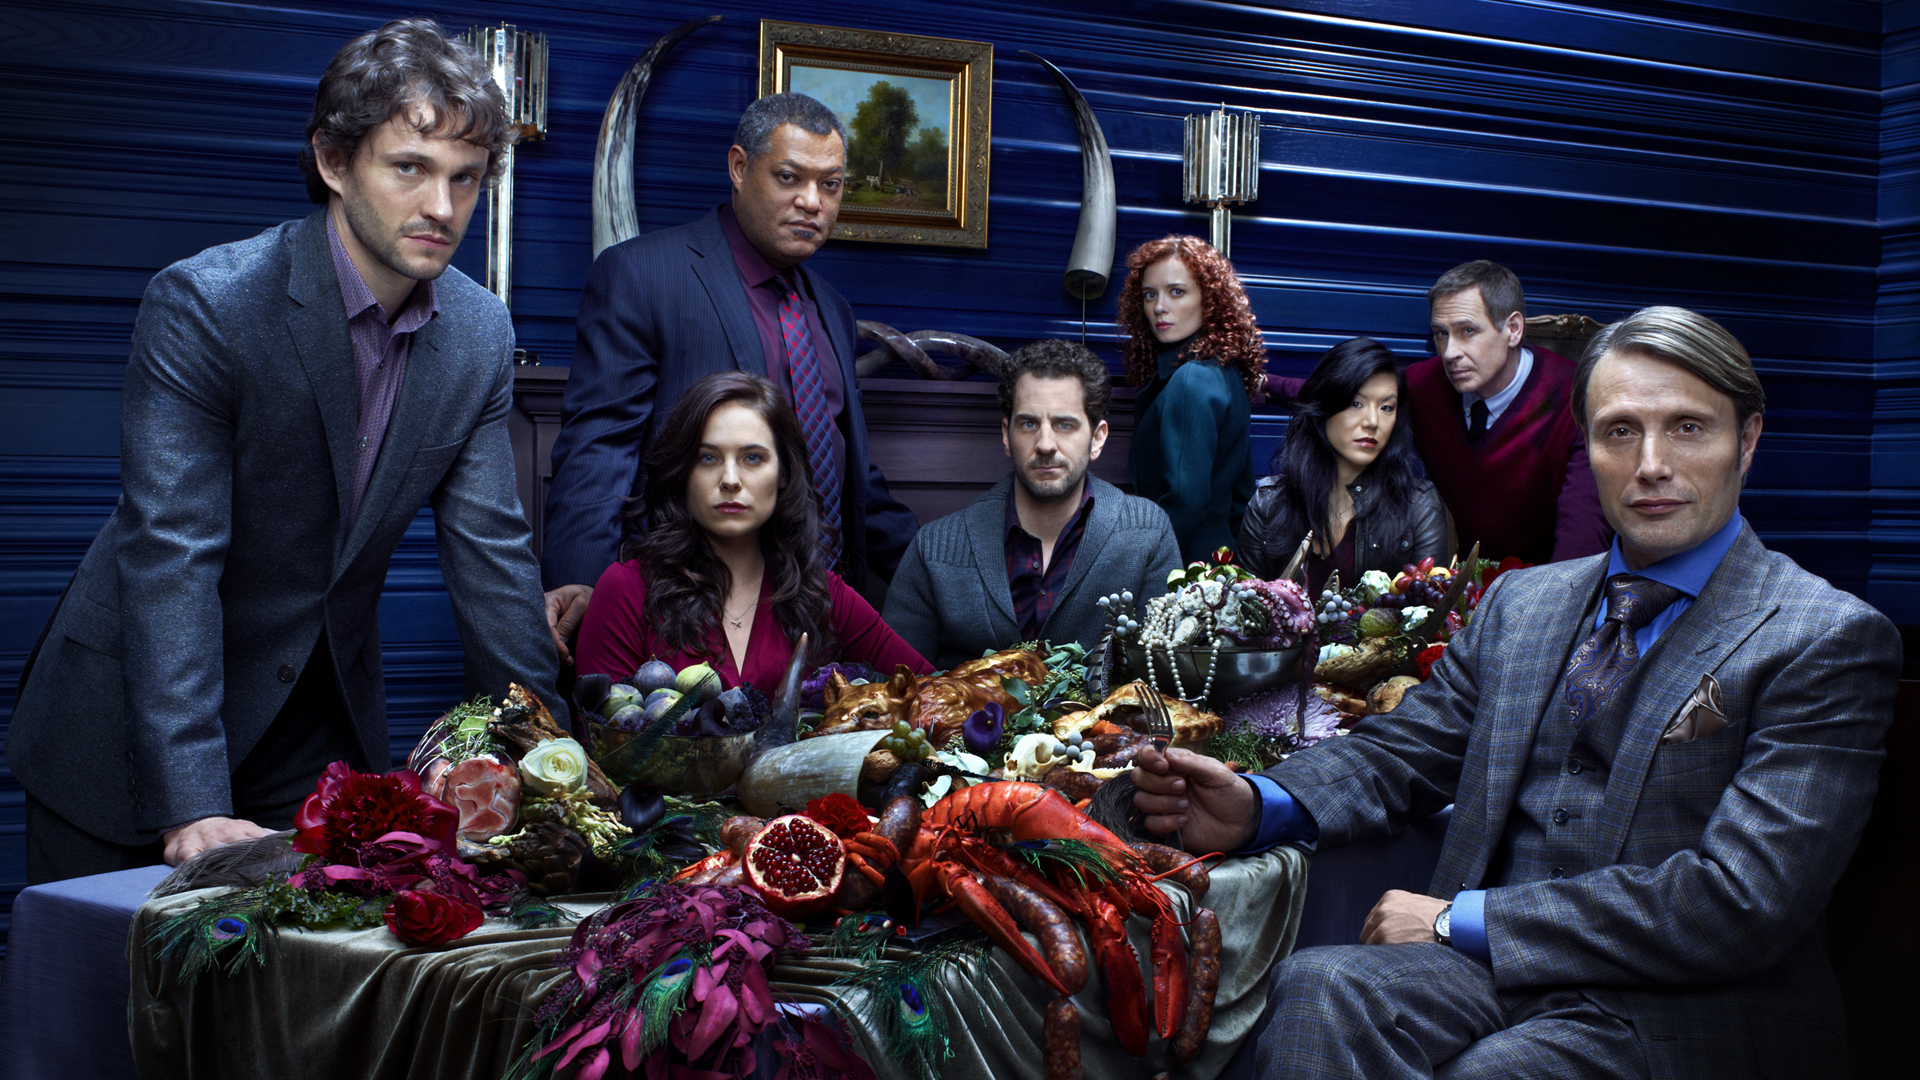 http://lounge.obviousmag.org/papel_carbono/2014/09/10/NBC-Hannibal-About-Cast-1920x1080.jpg